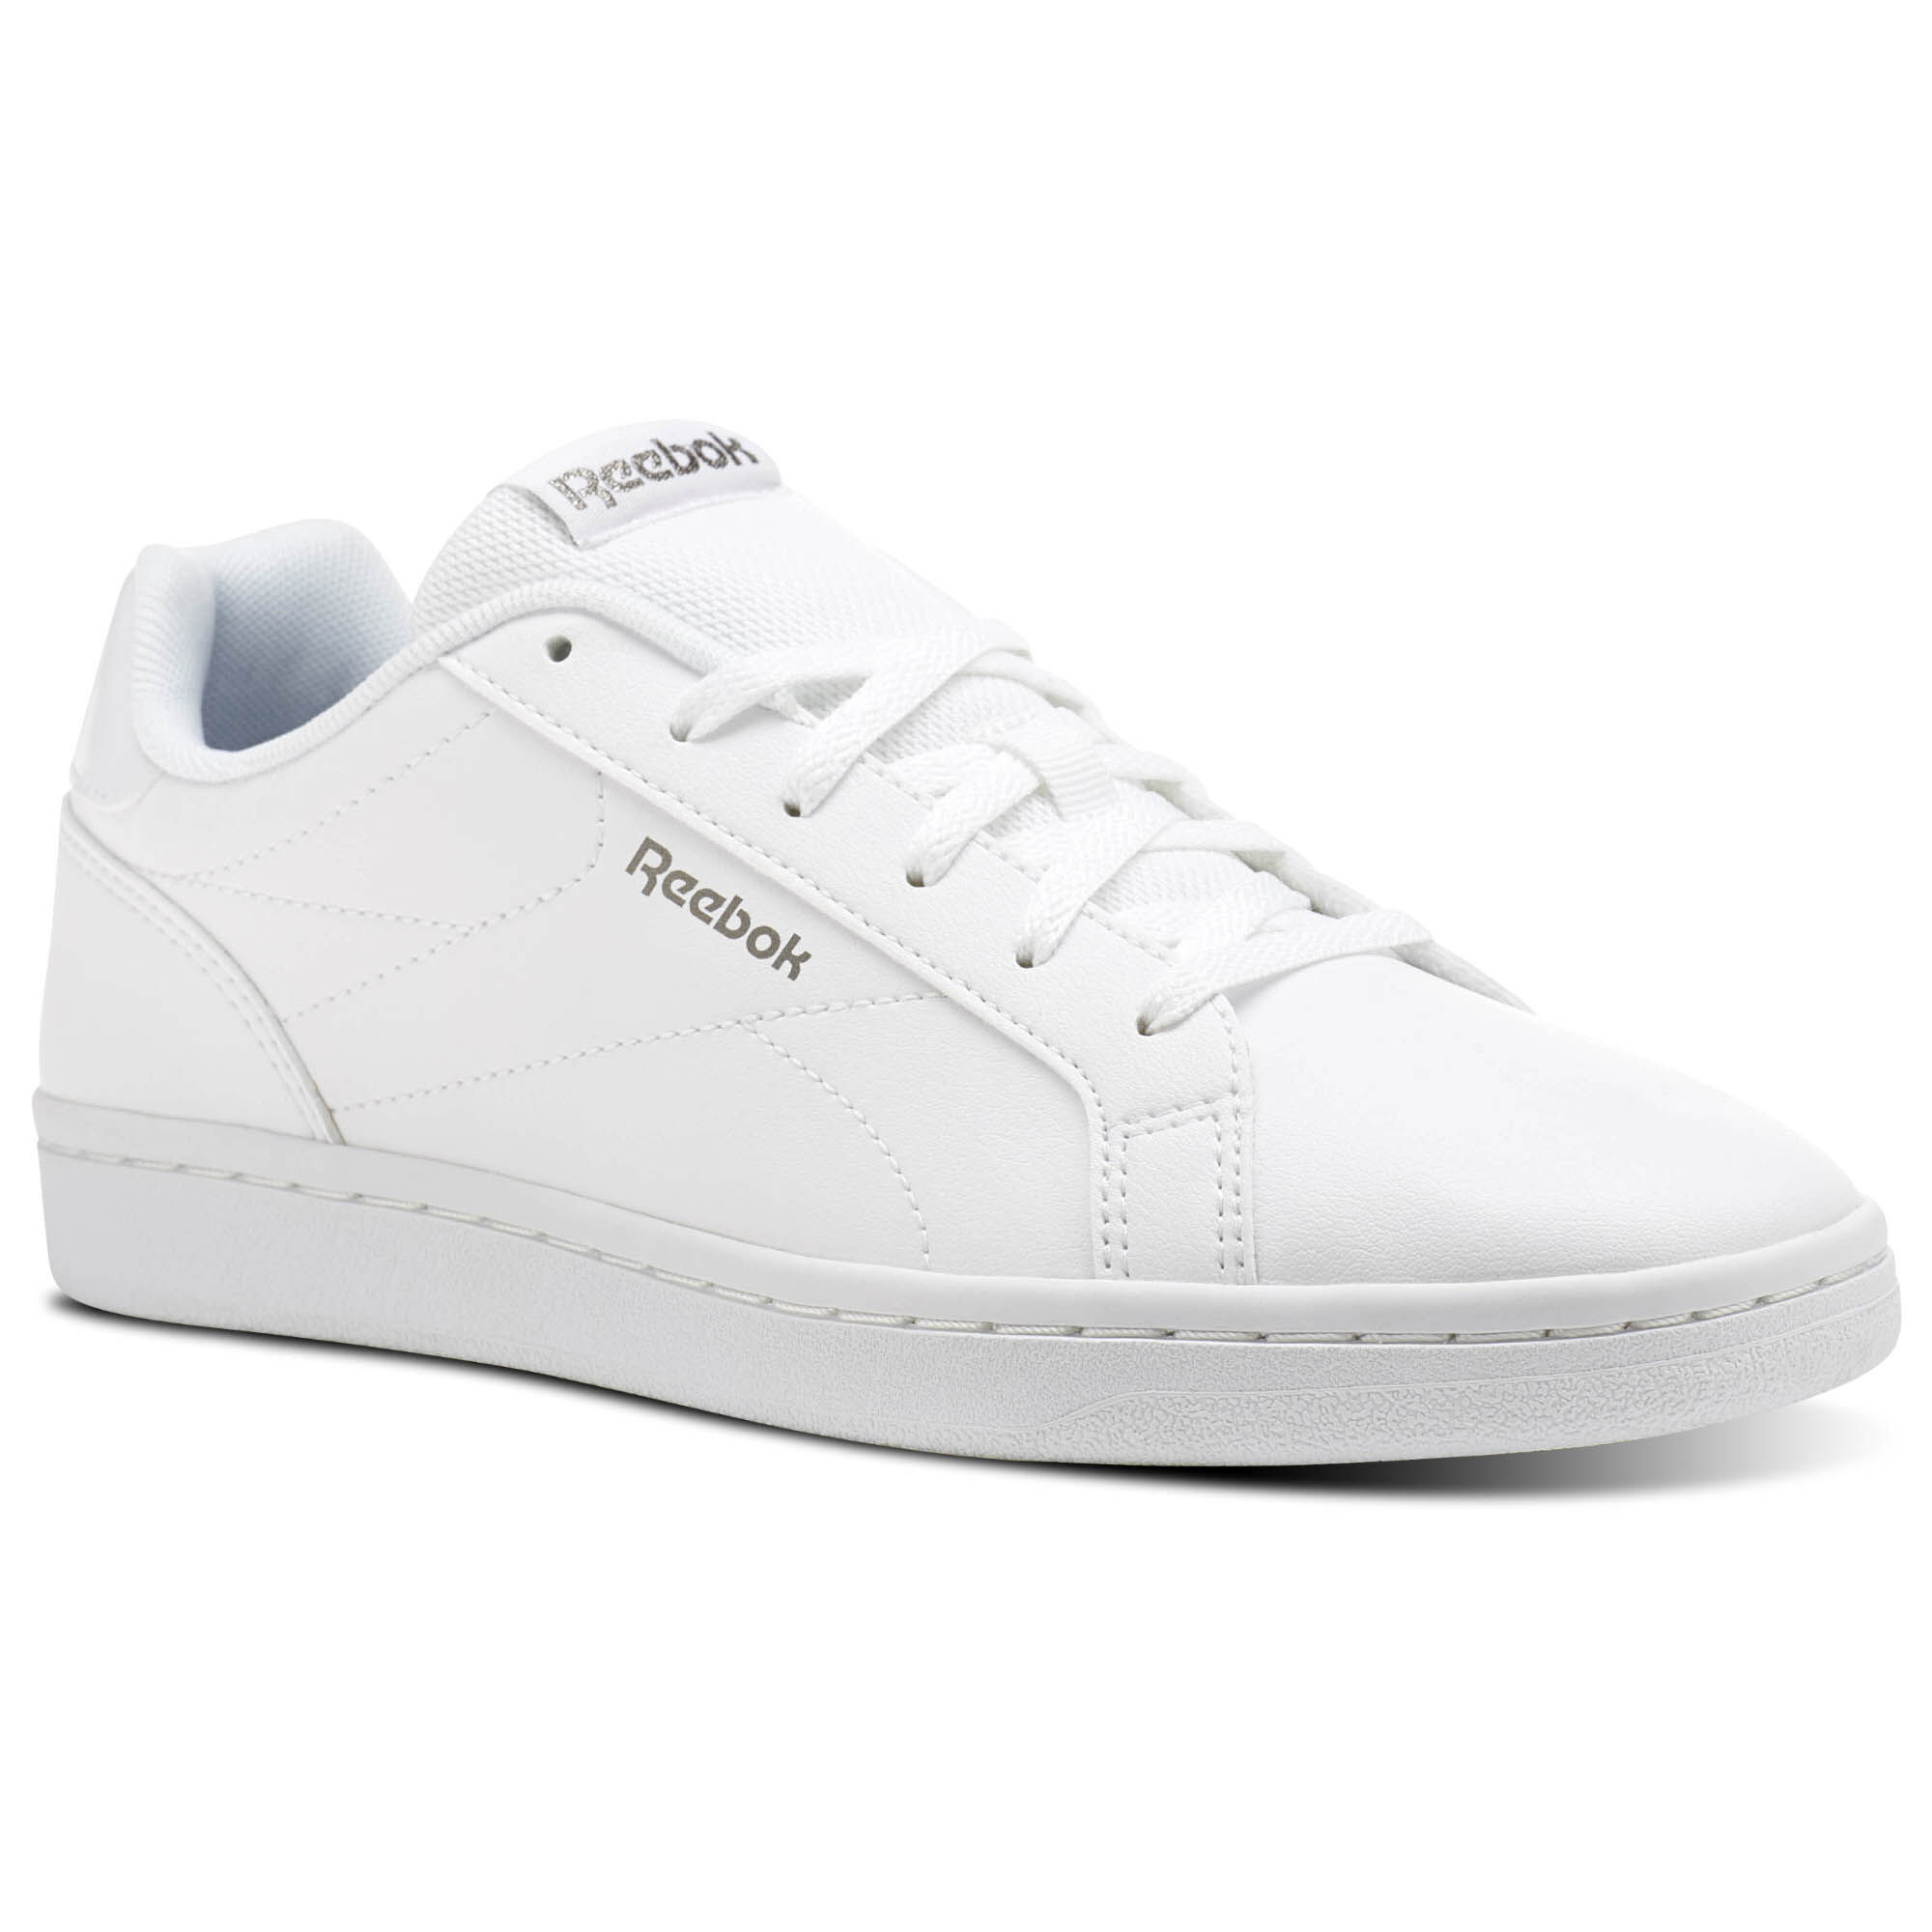 Reebok Royal Complete Clean Reliable Cheap Price Get To Buy Sale Online Buy Cheap For Cheap bYVFQi0M04